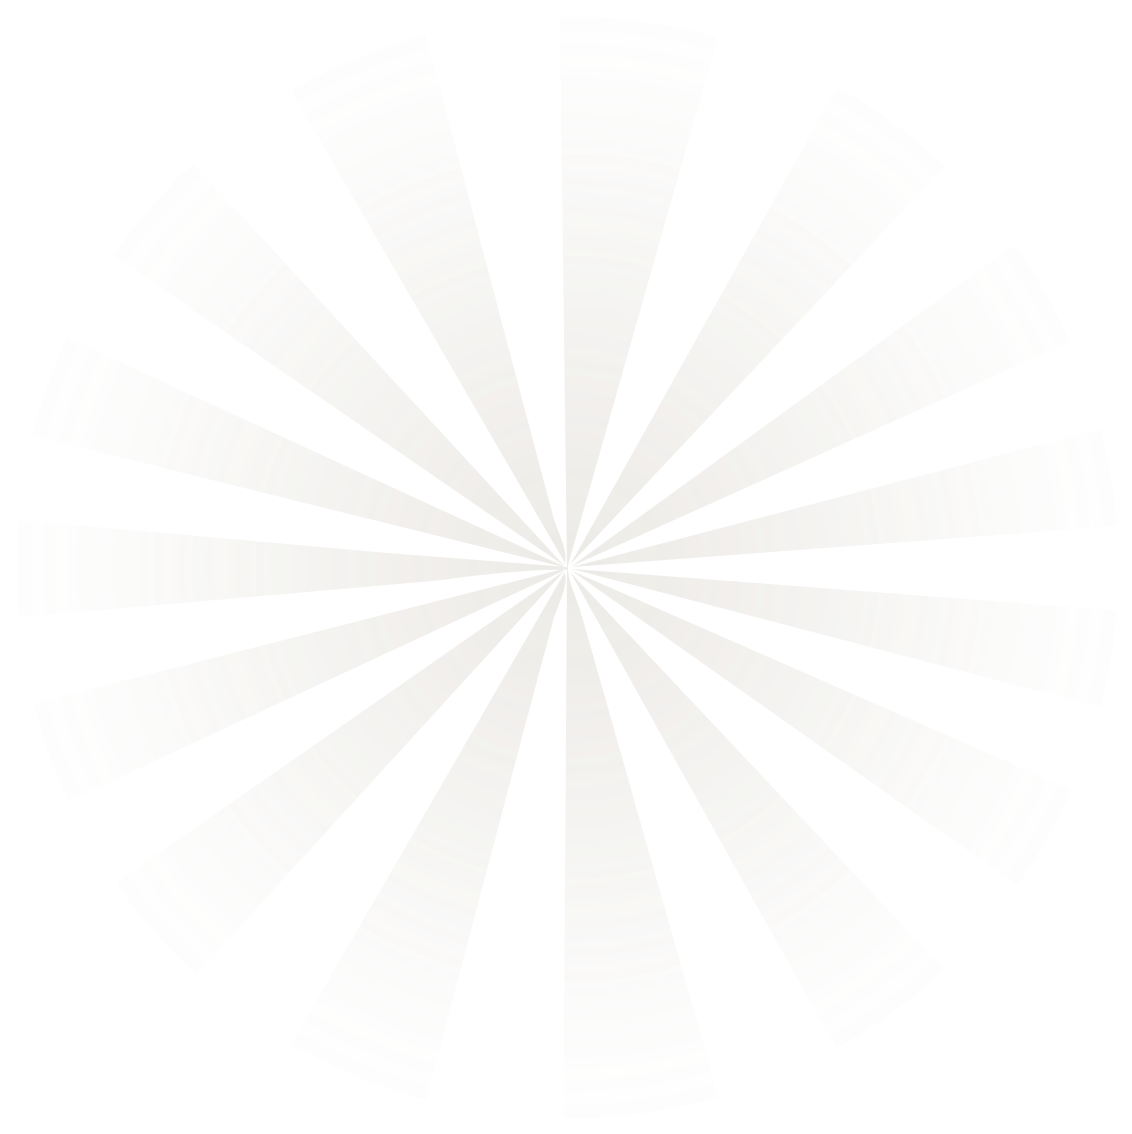 Transparent starburst clipart black and white - White Star Burst Png - Transparent Sunburst Background Png